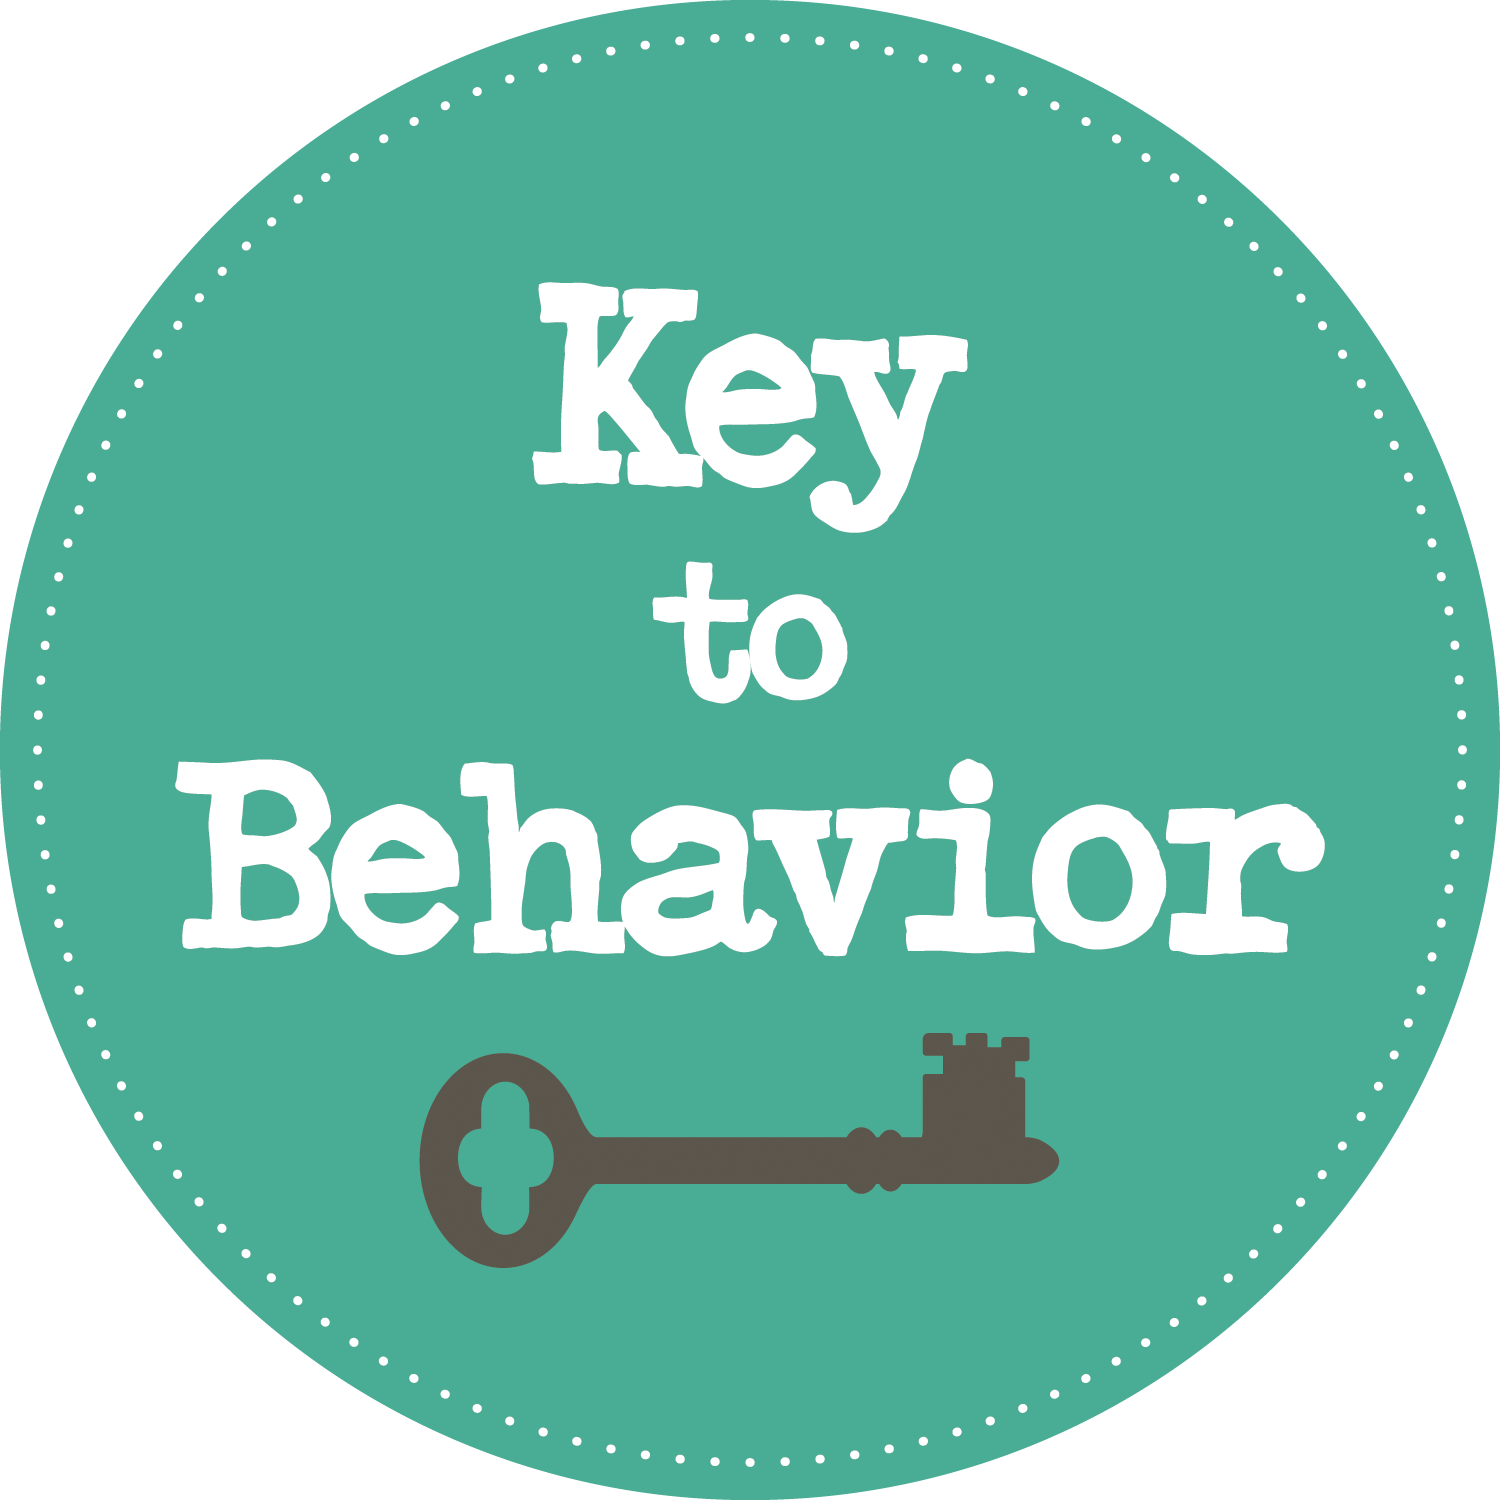 Key to Behavior